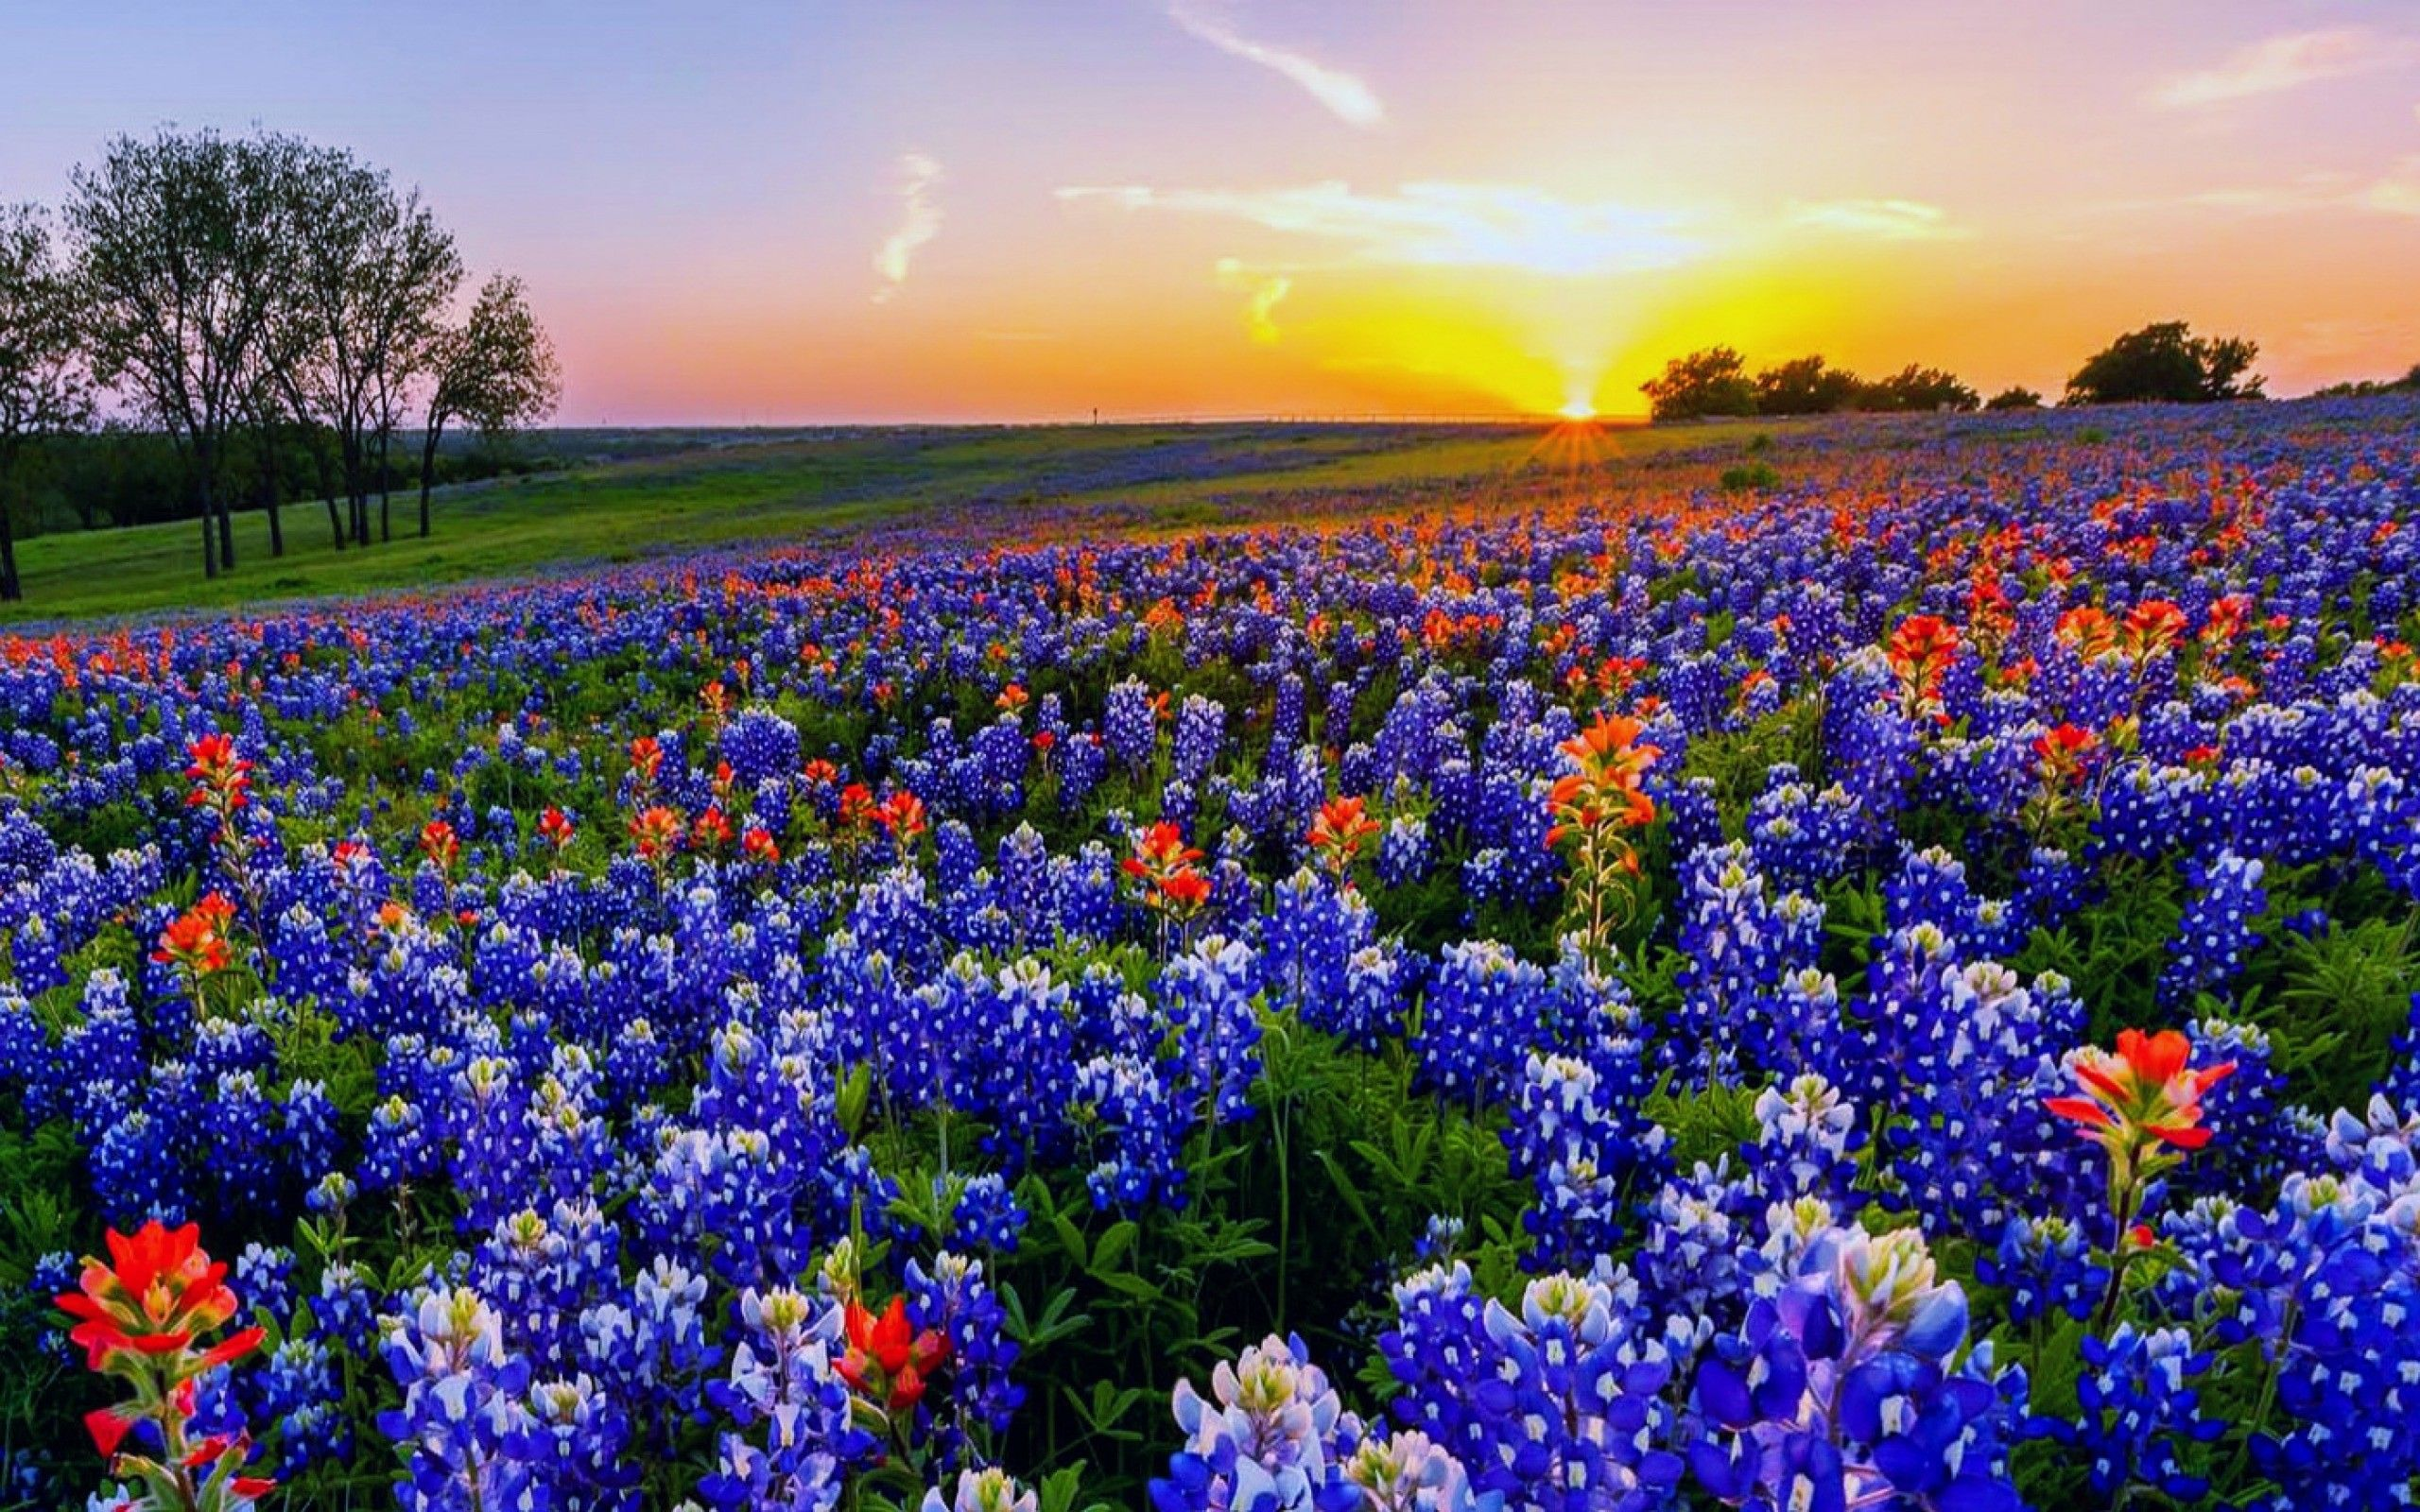 Texas Bluebonnets Wallpaper 3 - 2560 X 1600 | stmed.net